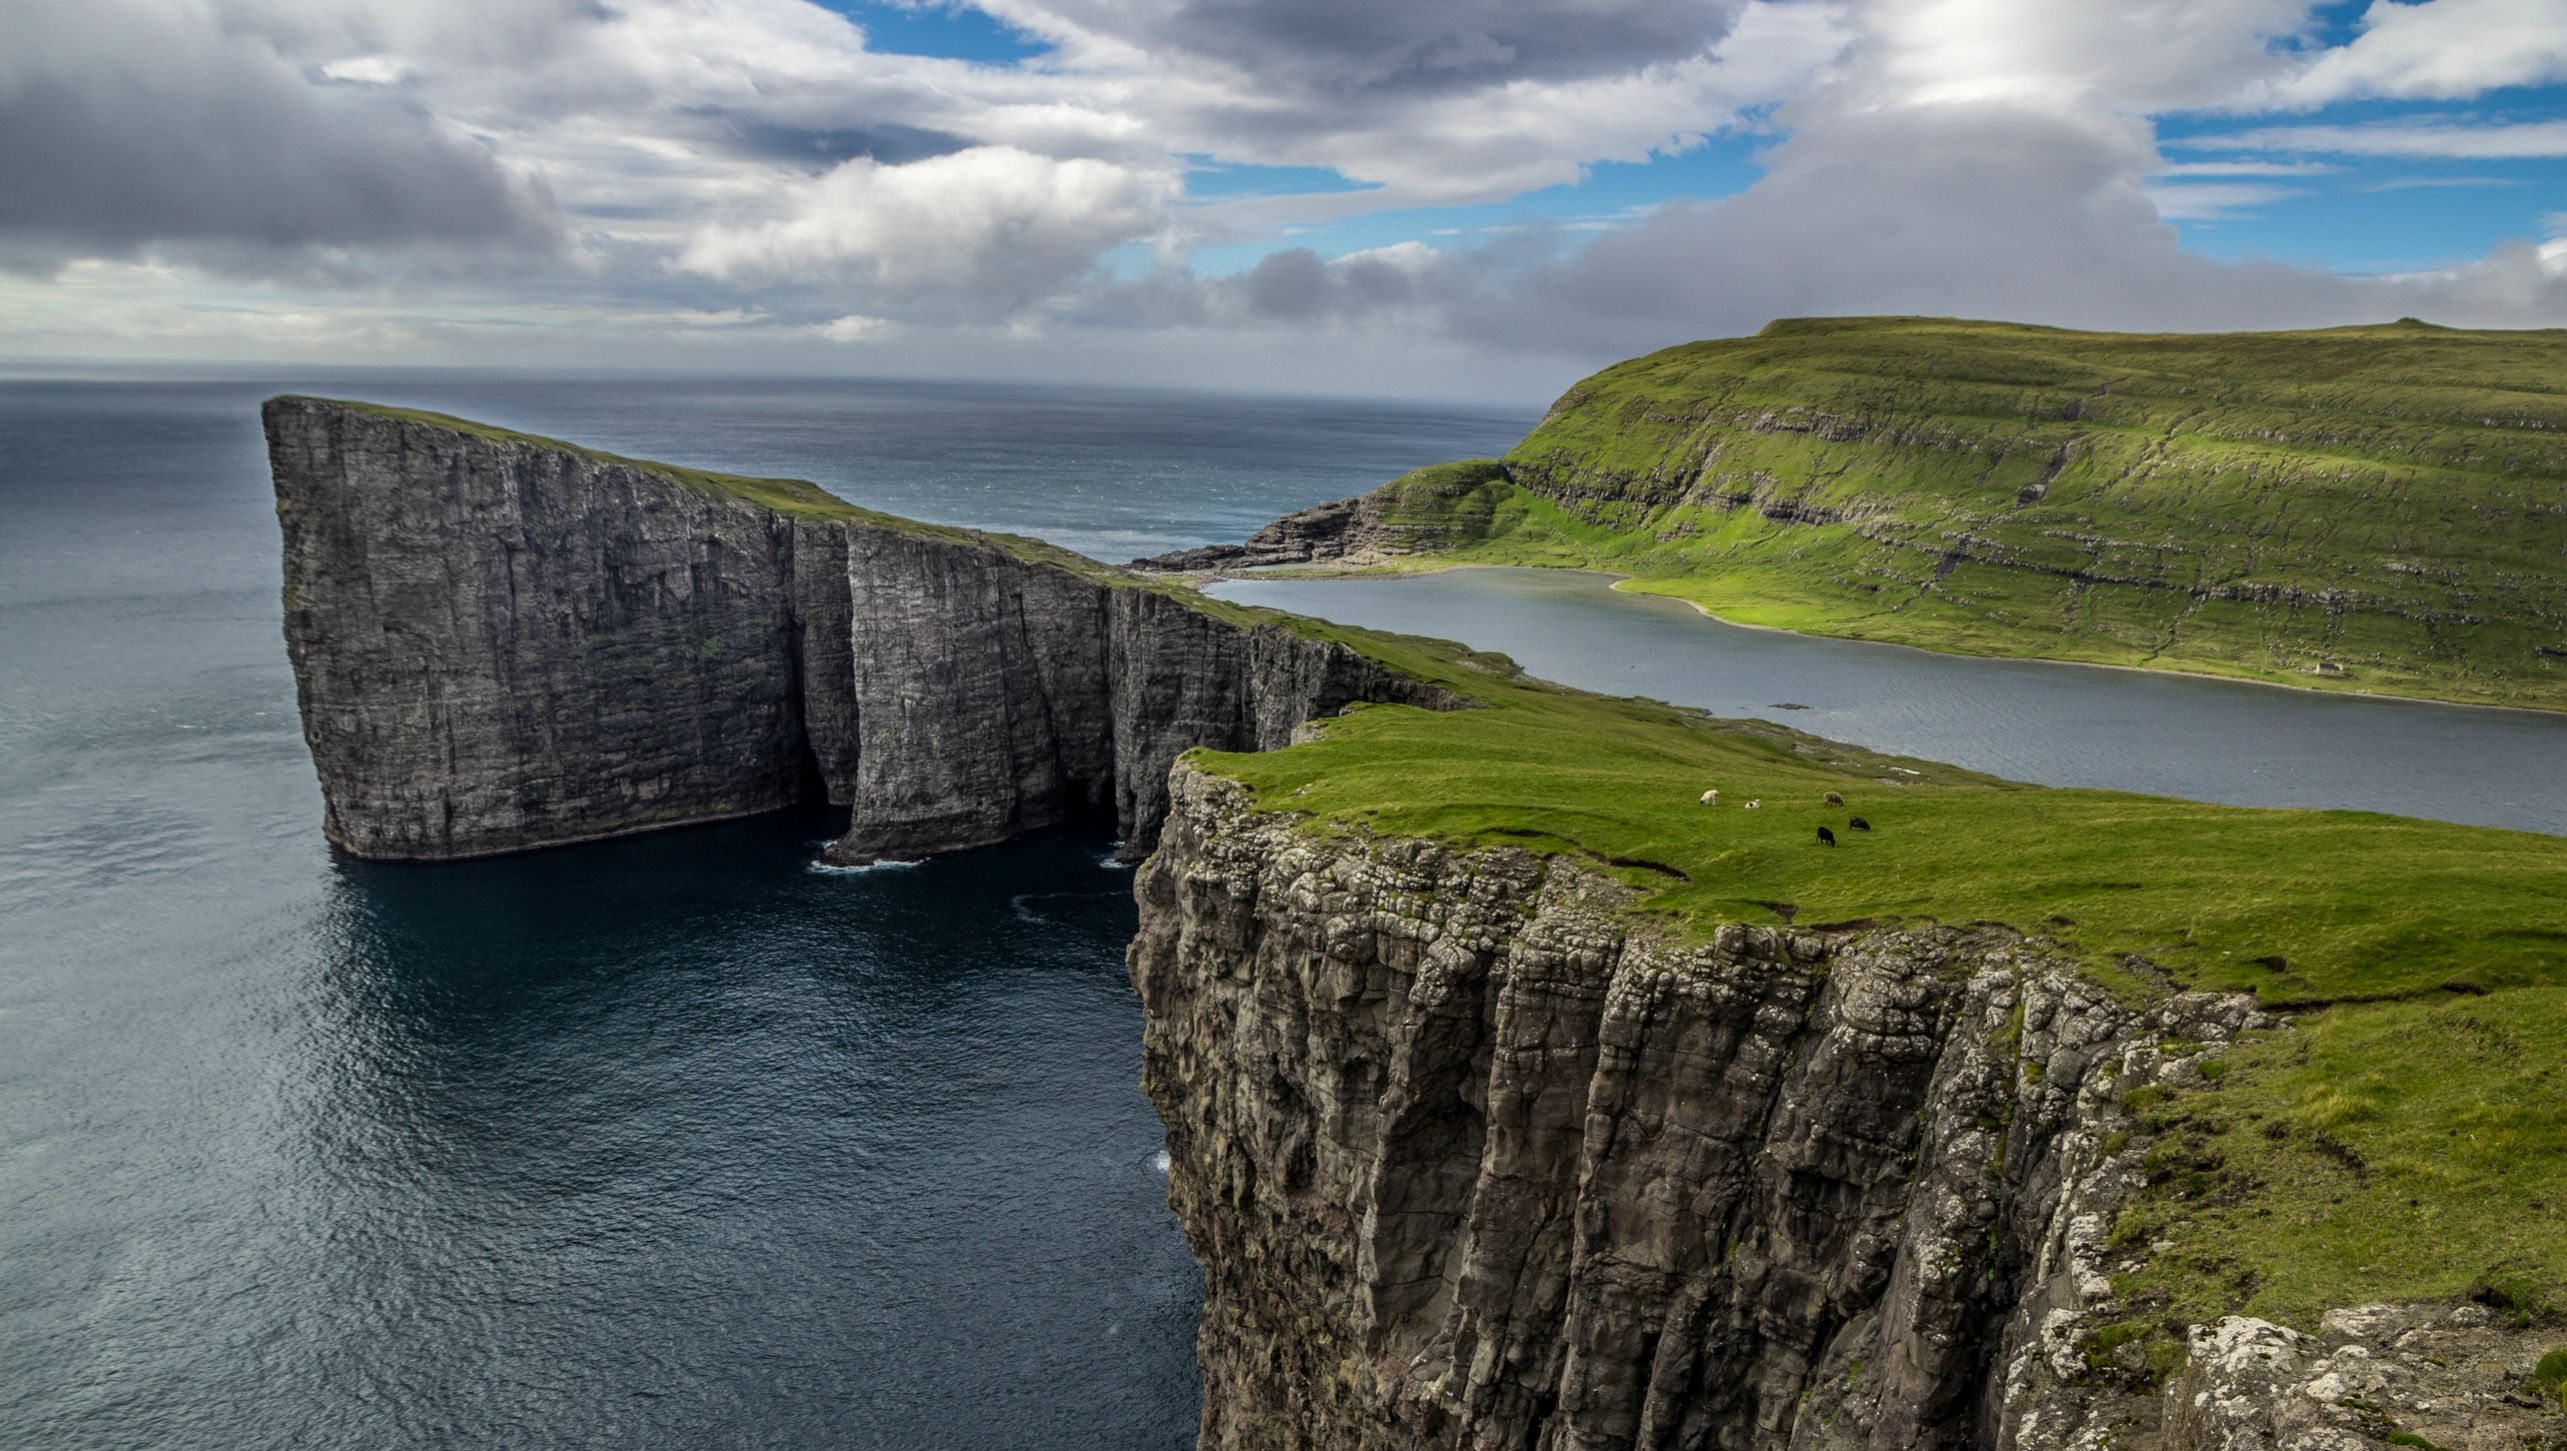 faroes-island-lake-above-an-ocean-4